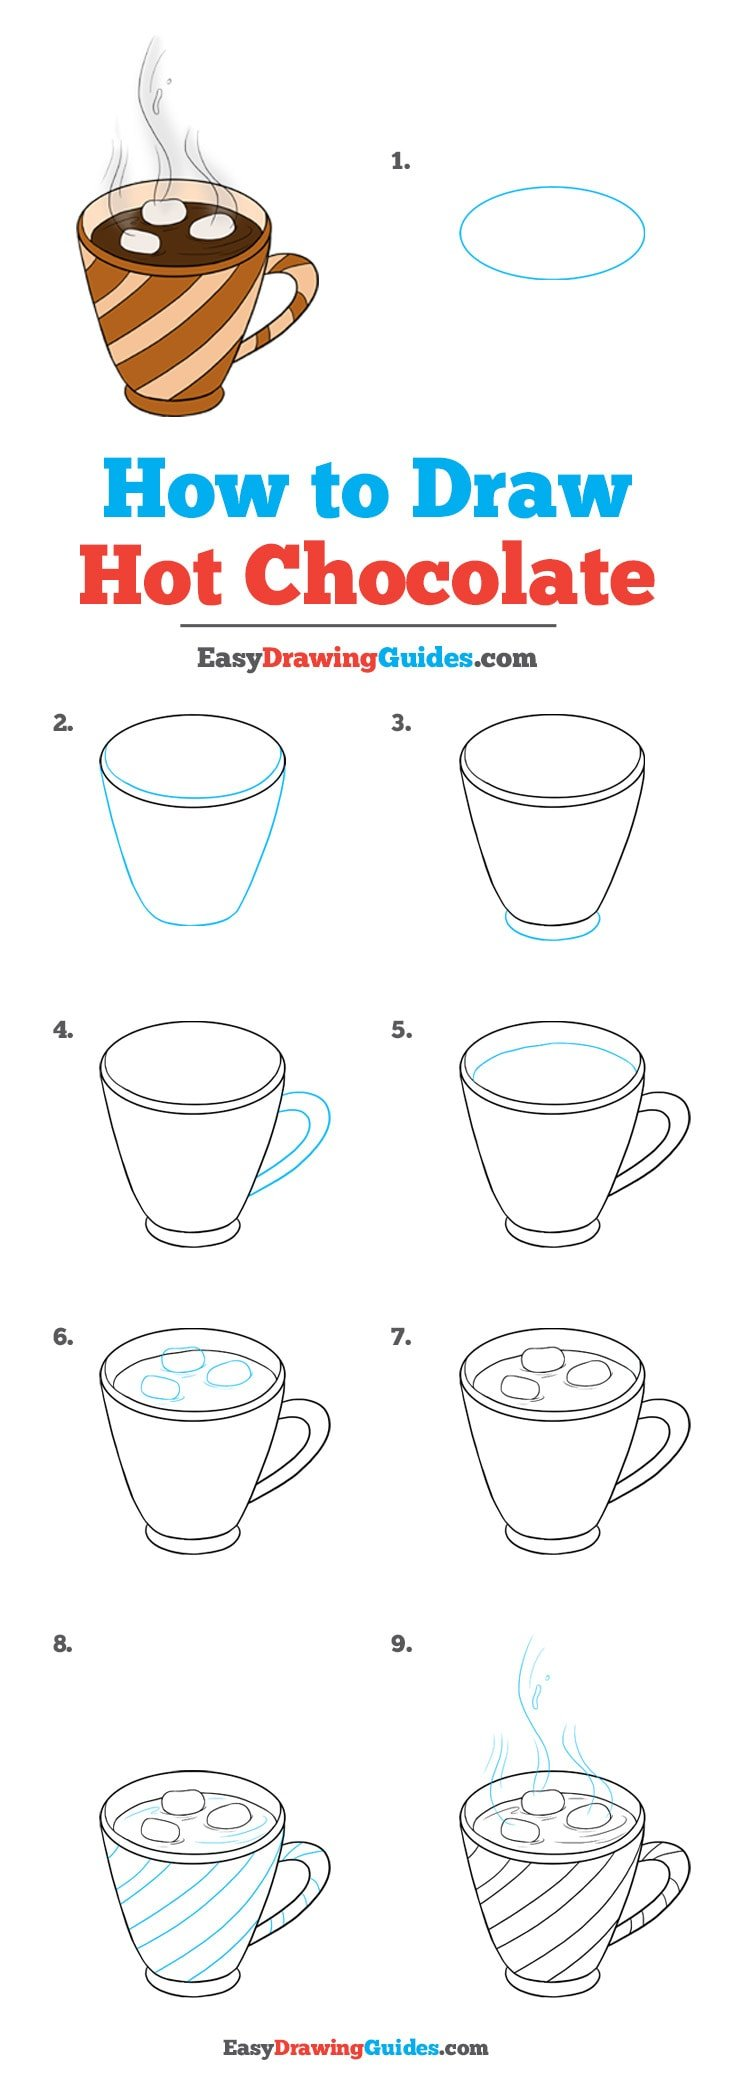 How to Draw Chocolate: Step by Step Tutorial